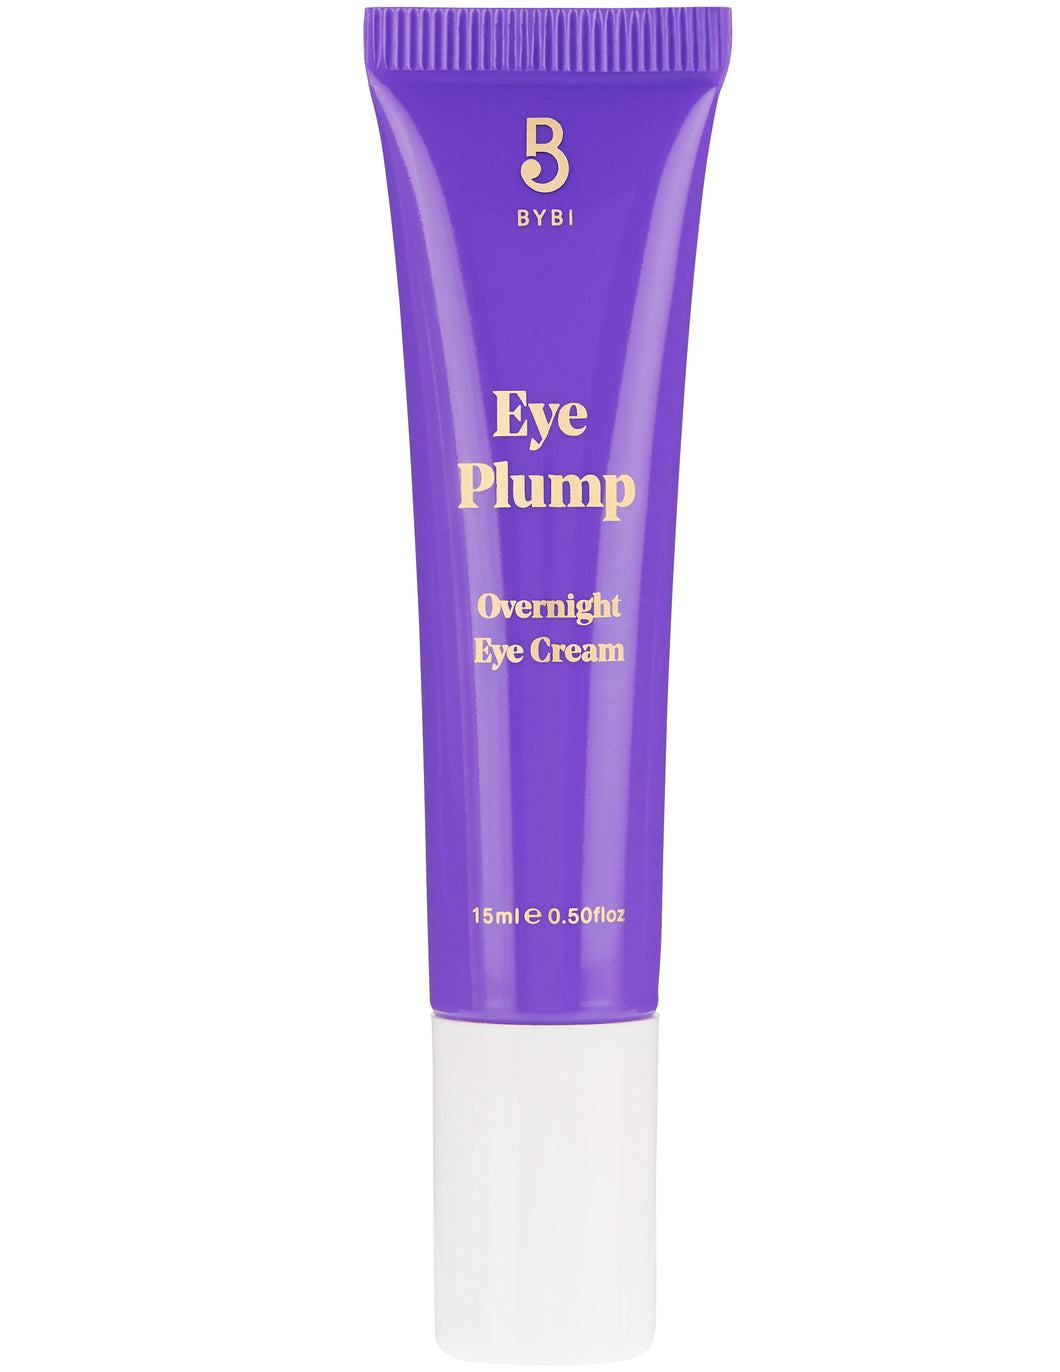 Eye Plump Bakuchiol Eye Cream - Crema Contorno de Ojos